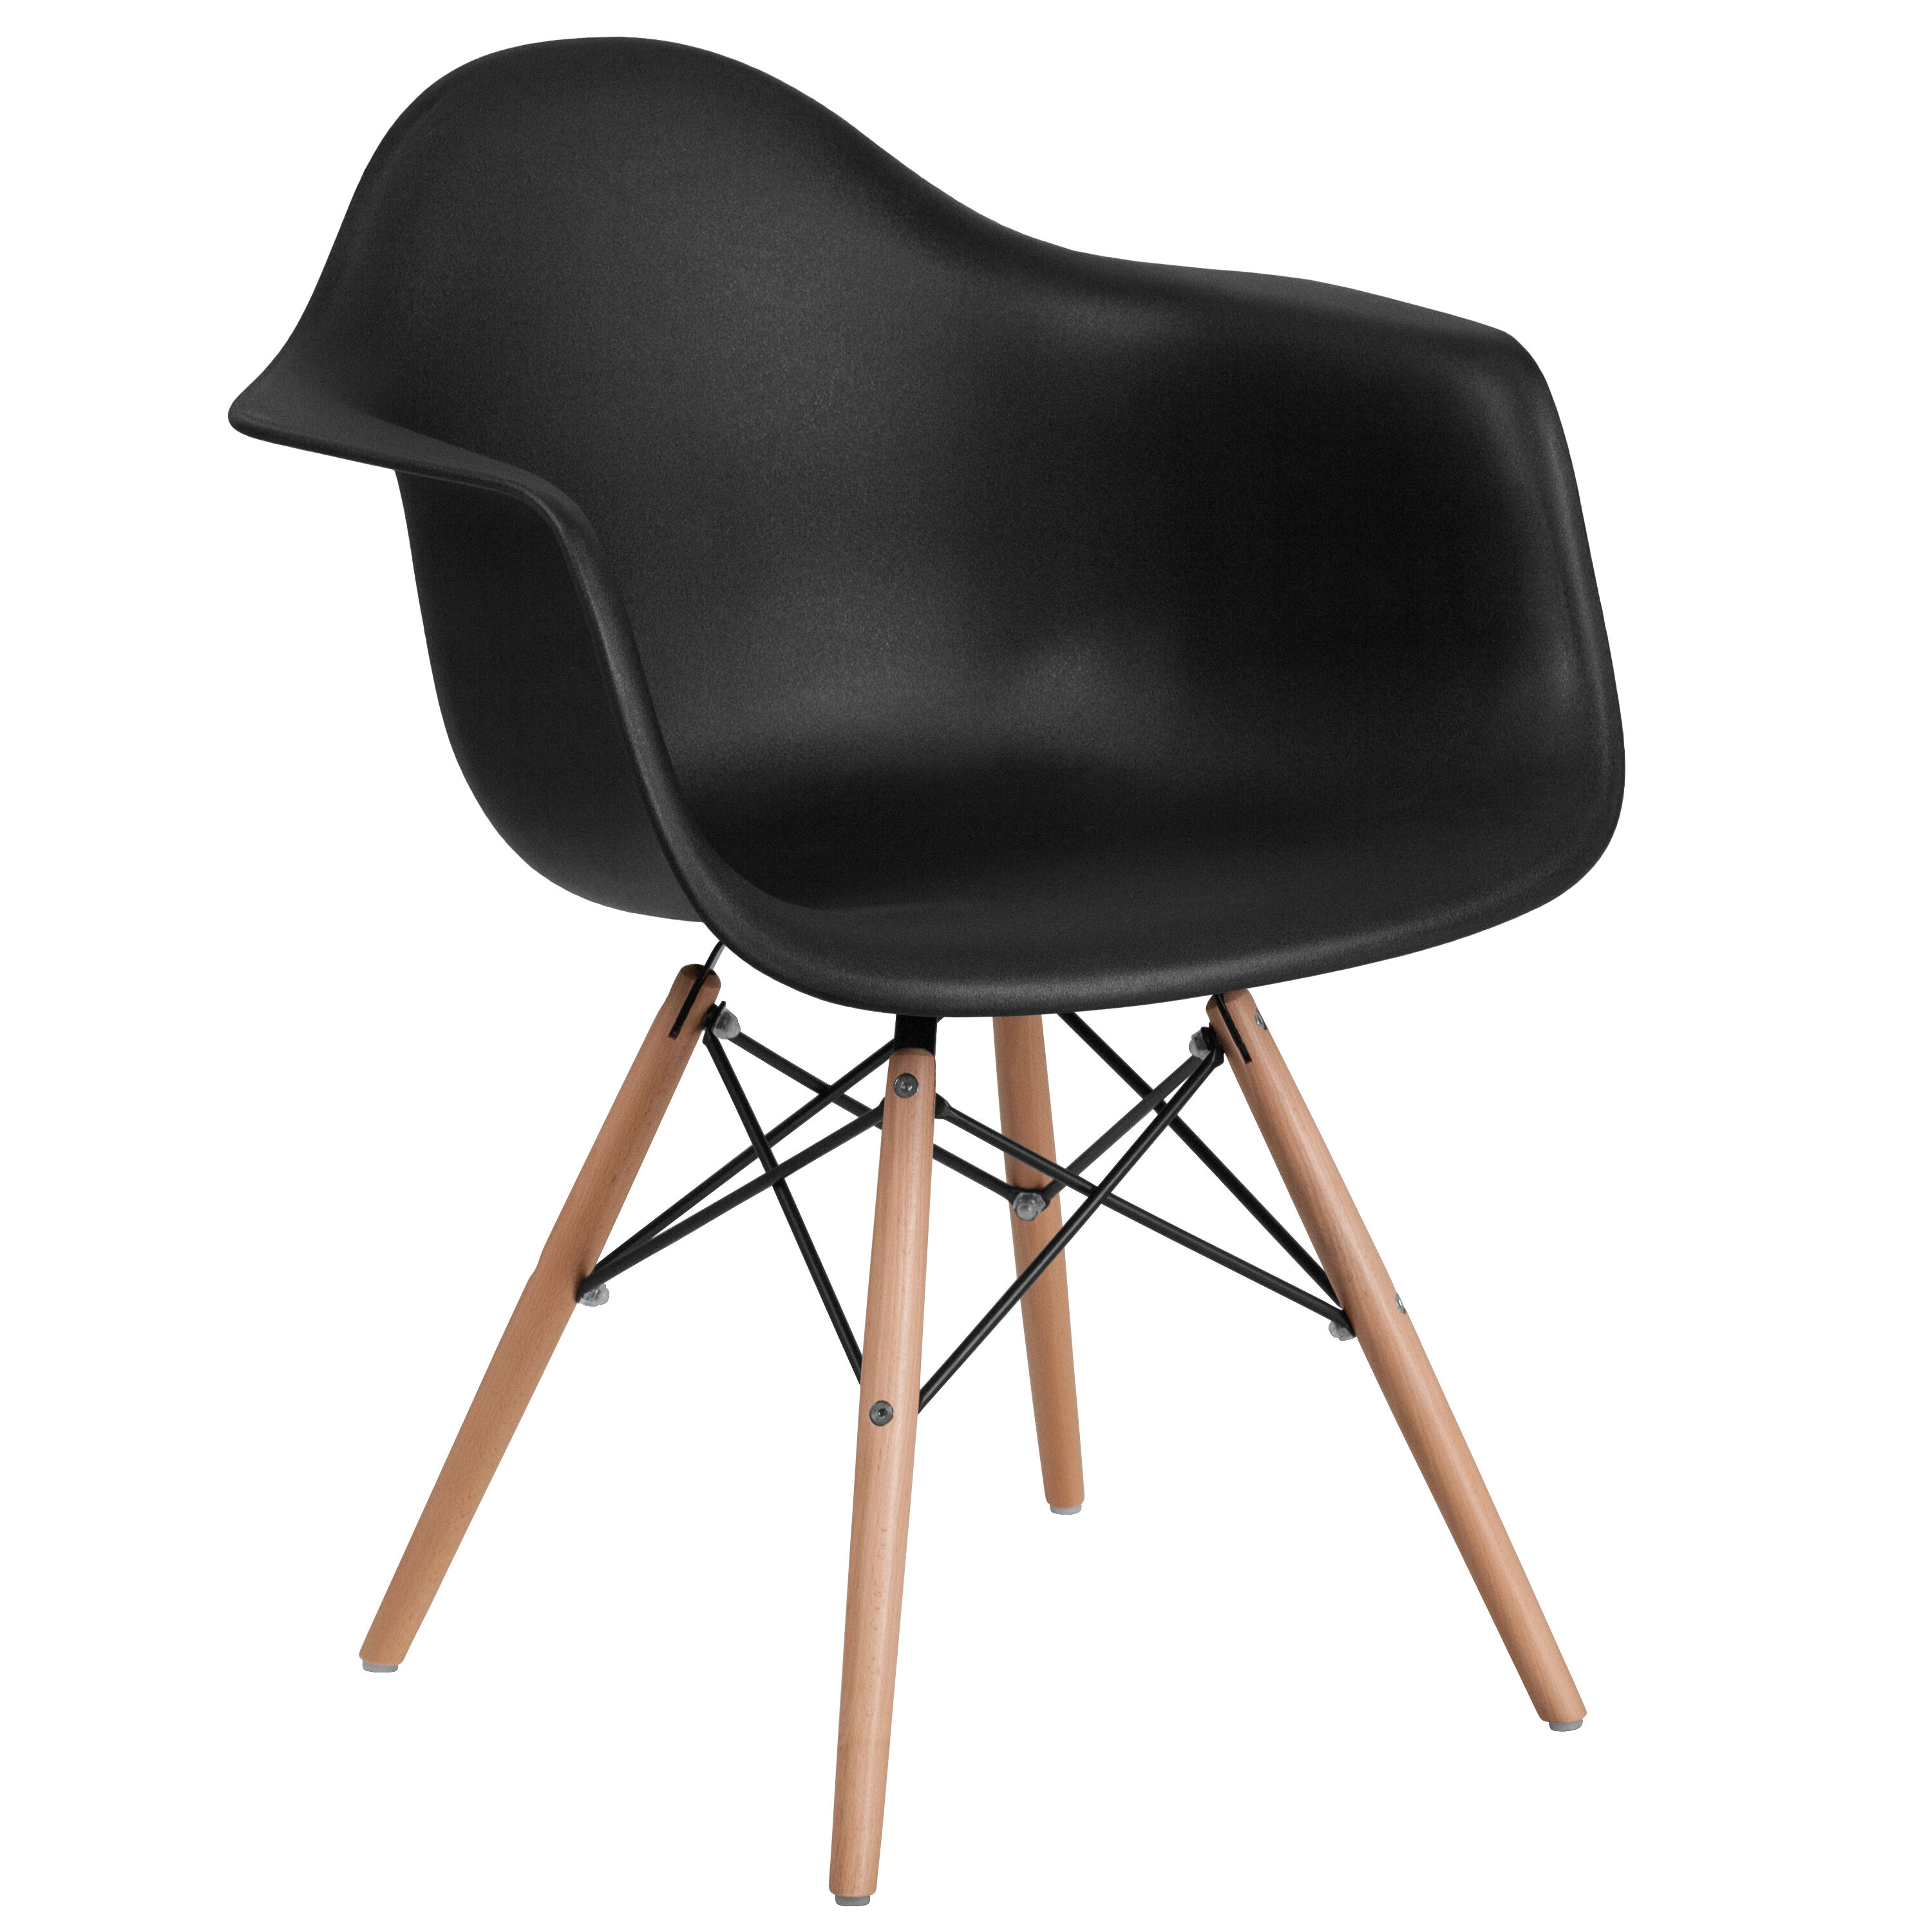 black plastic chair with wooden legs chairs in target wood fh 132 dpp bk gg bizchair com